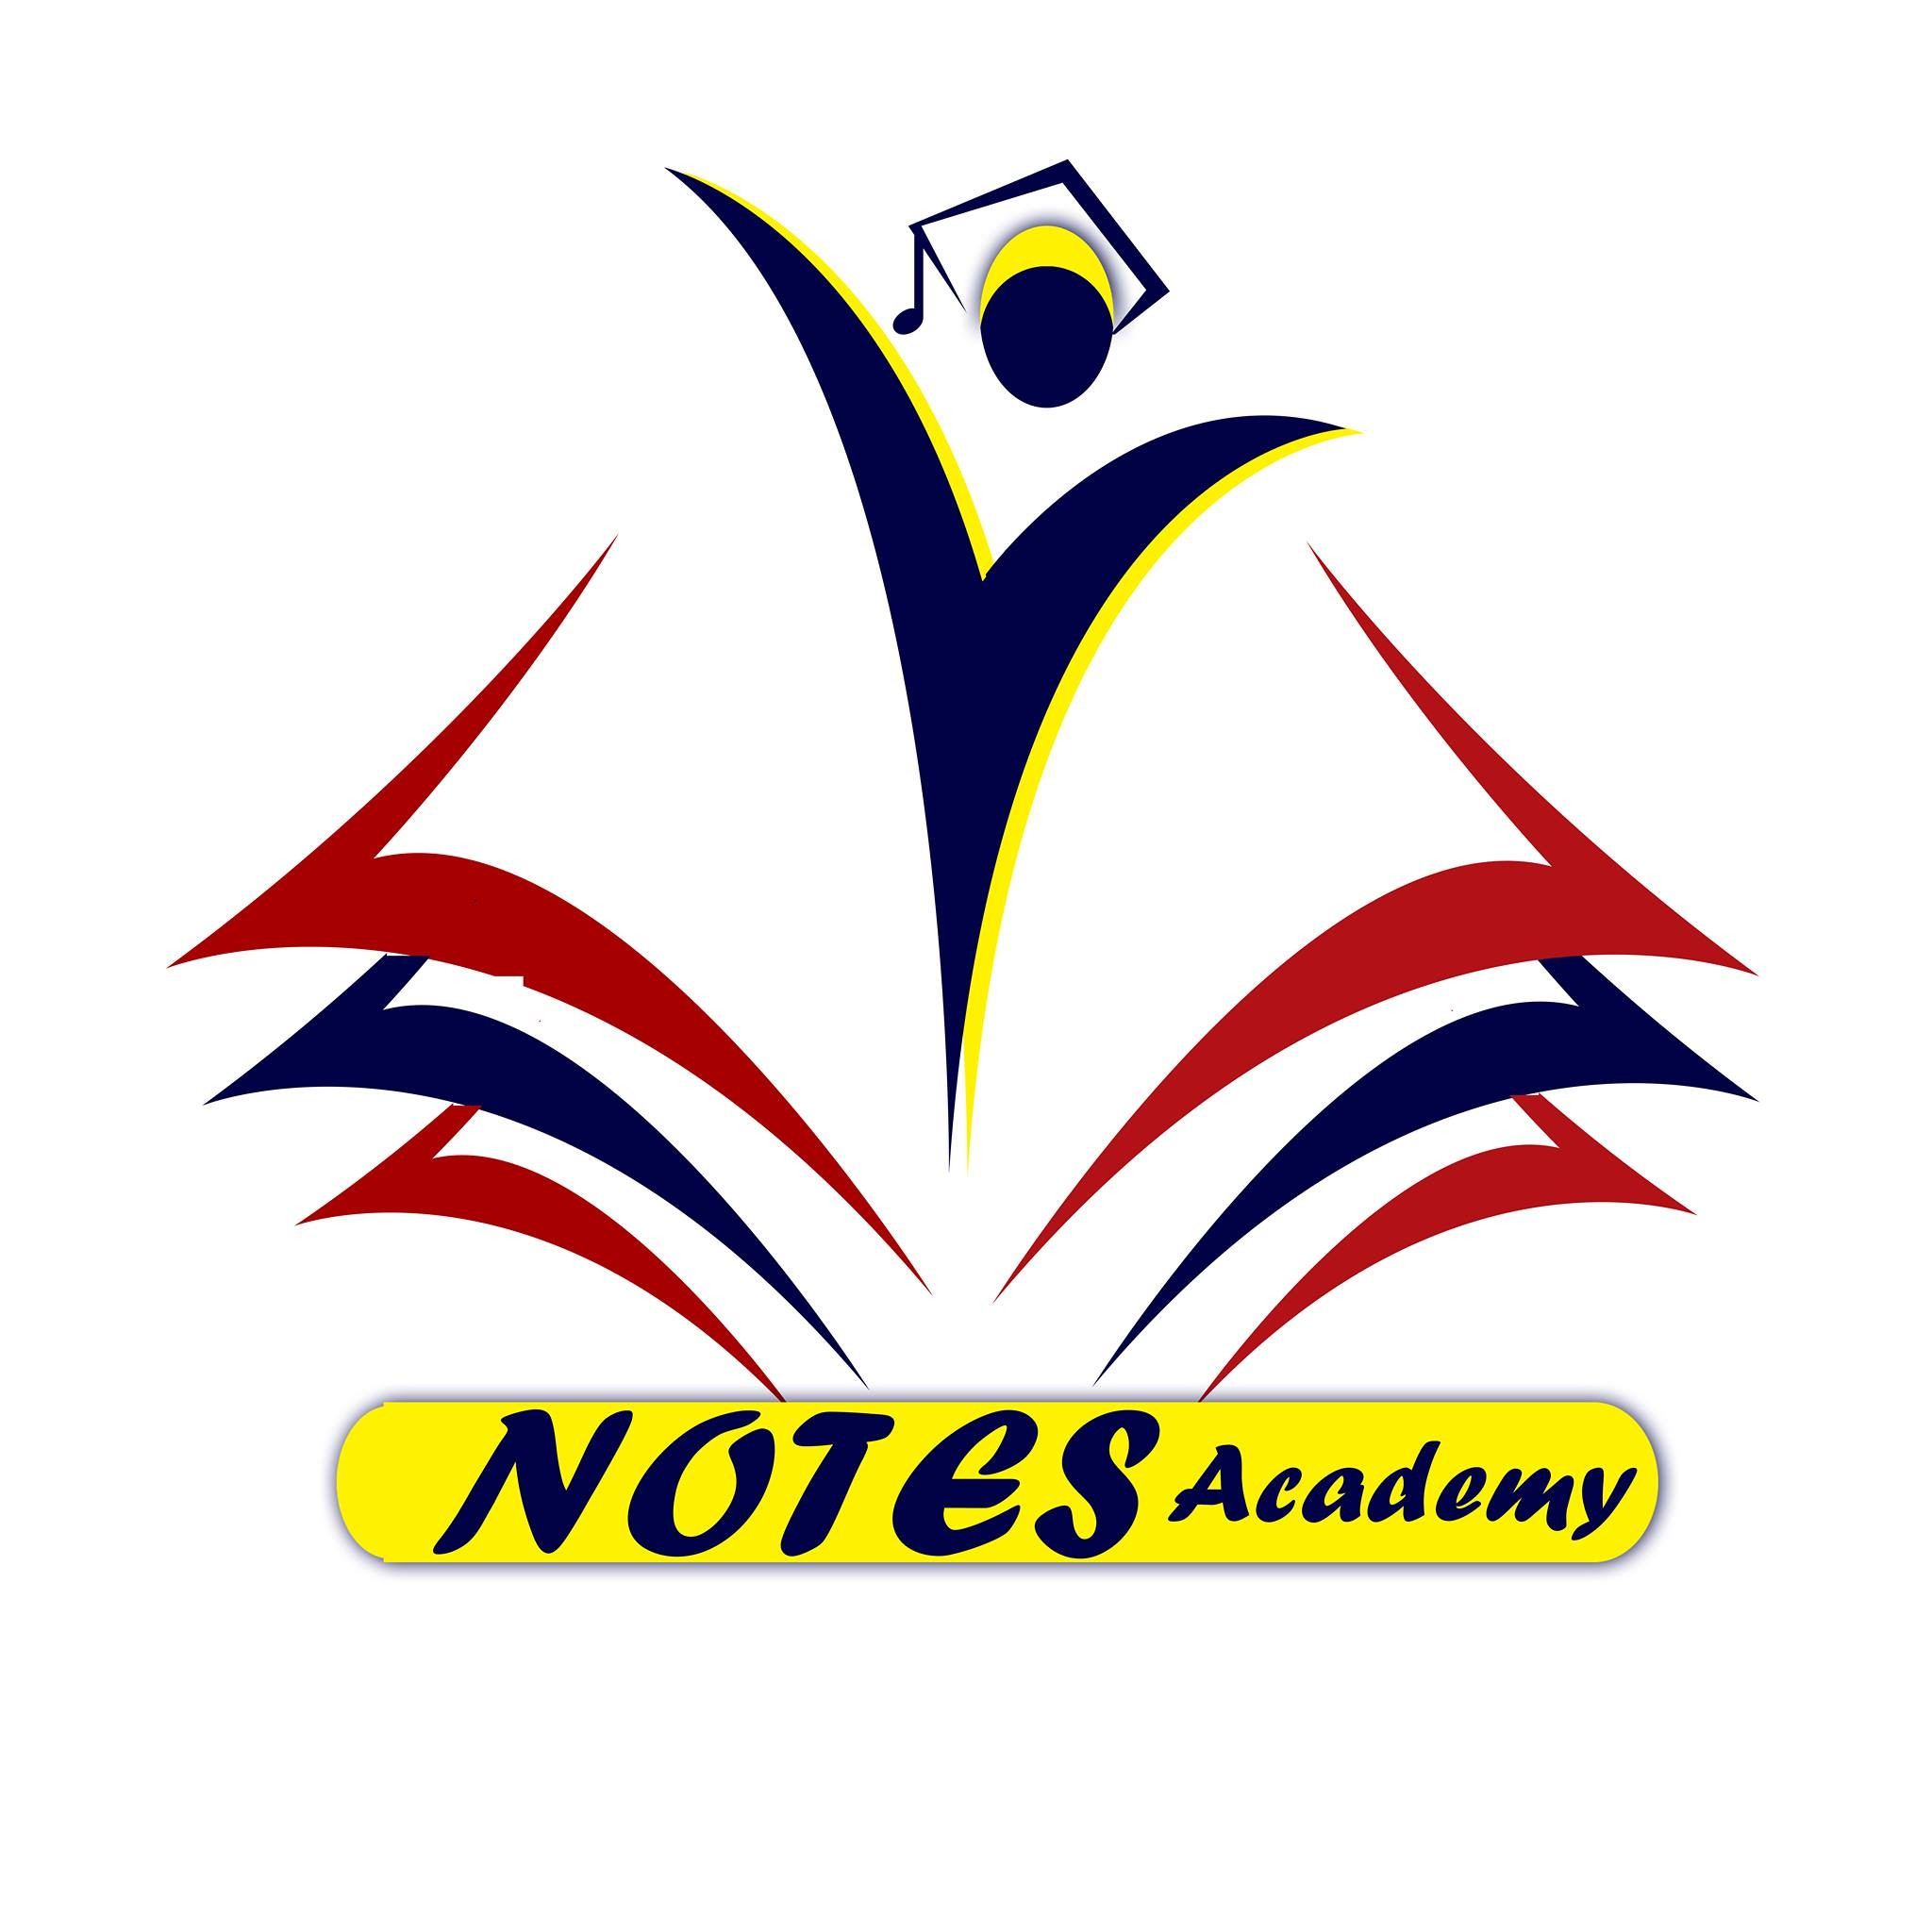 Notes Academy's logo